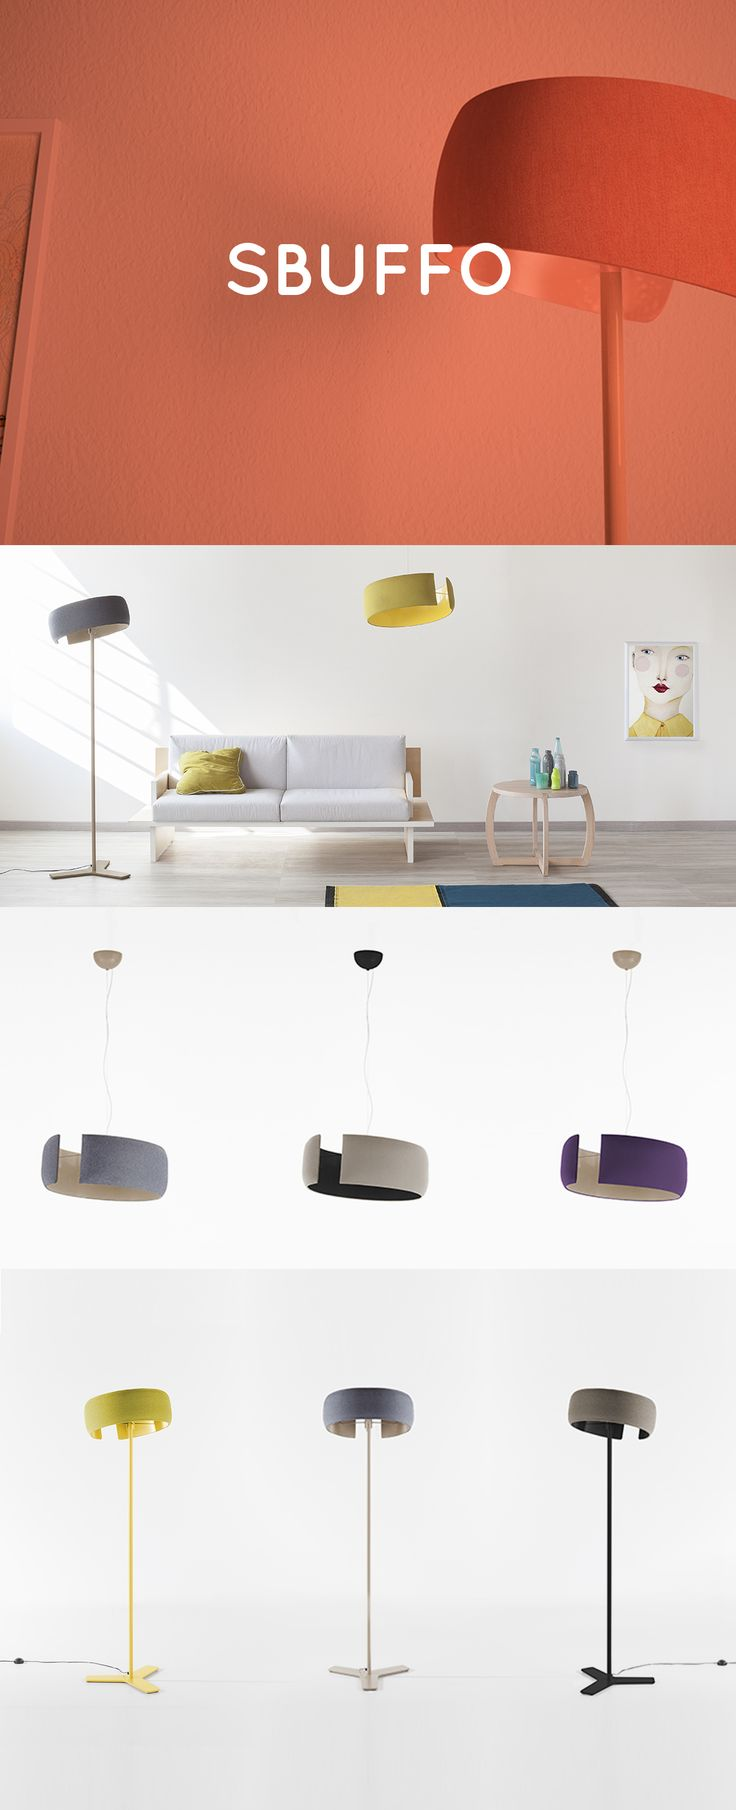 Furniture Design -  Sbuffo by Formabilo